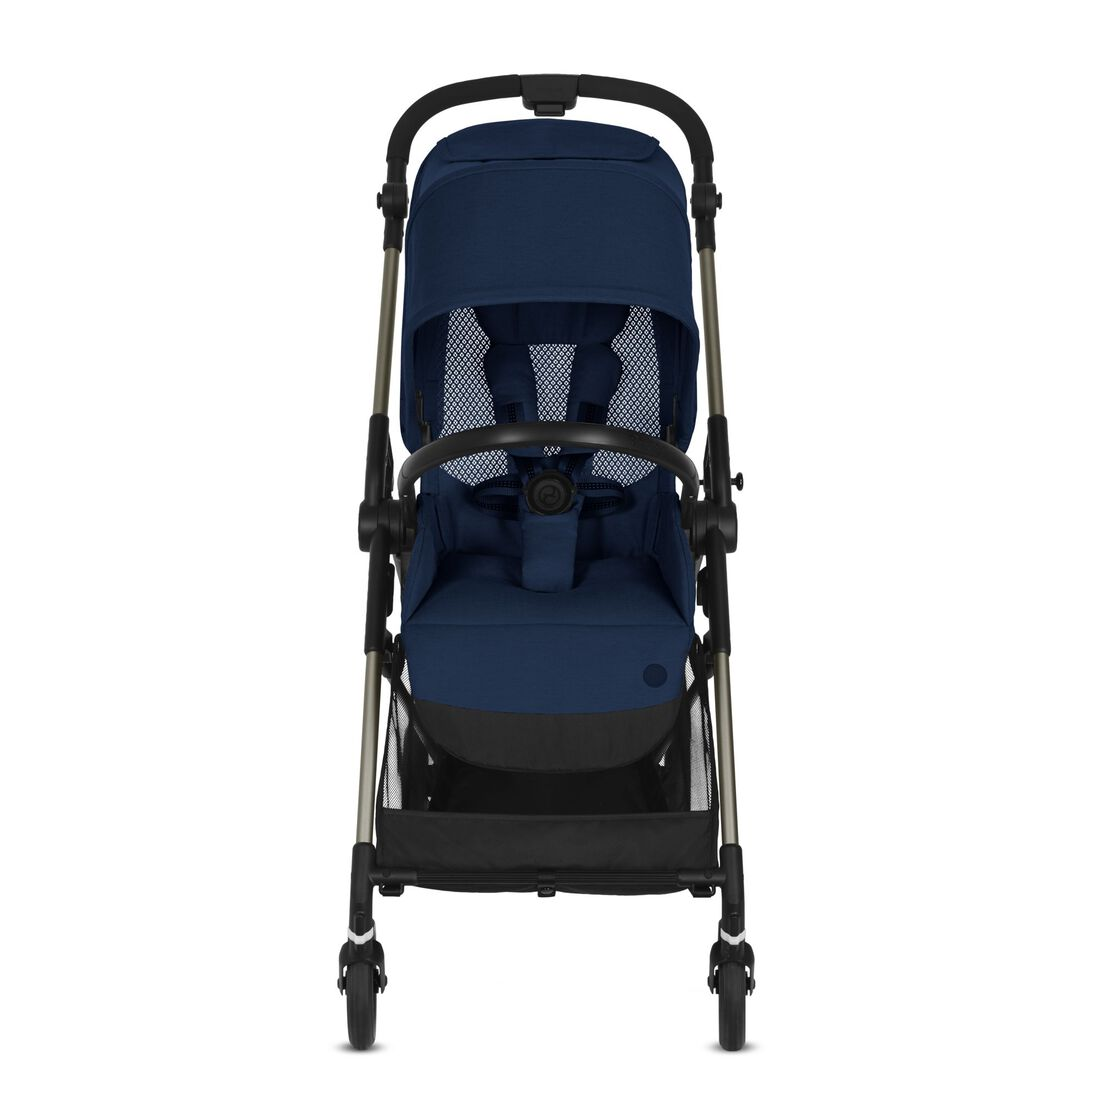 CYBEX Melio - Navy Blue in Navy Blue large Bild 2